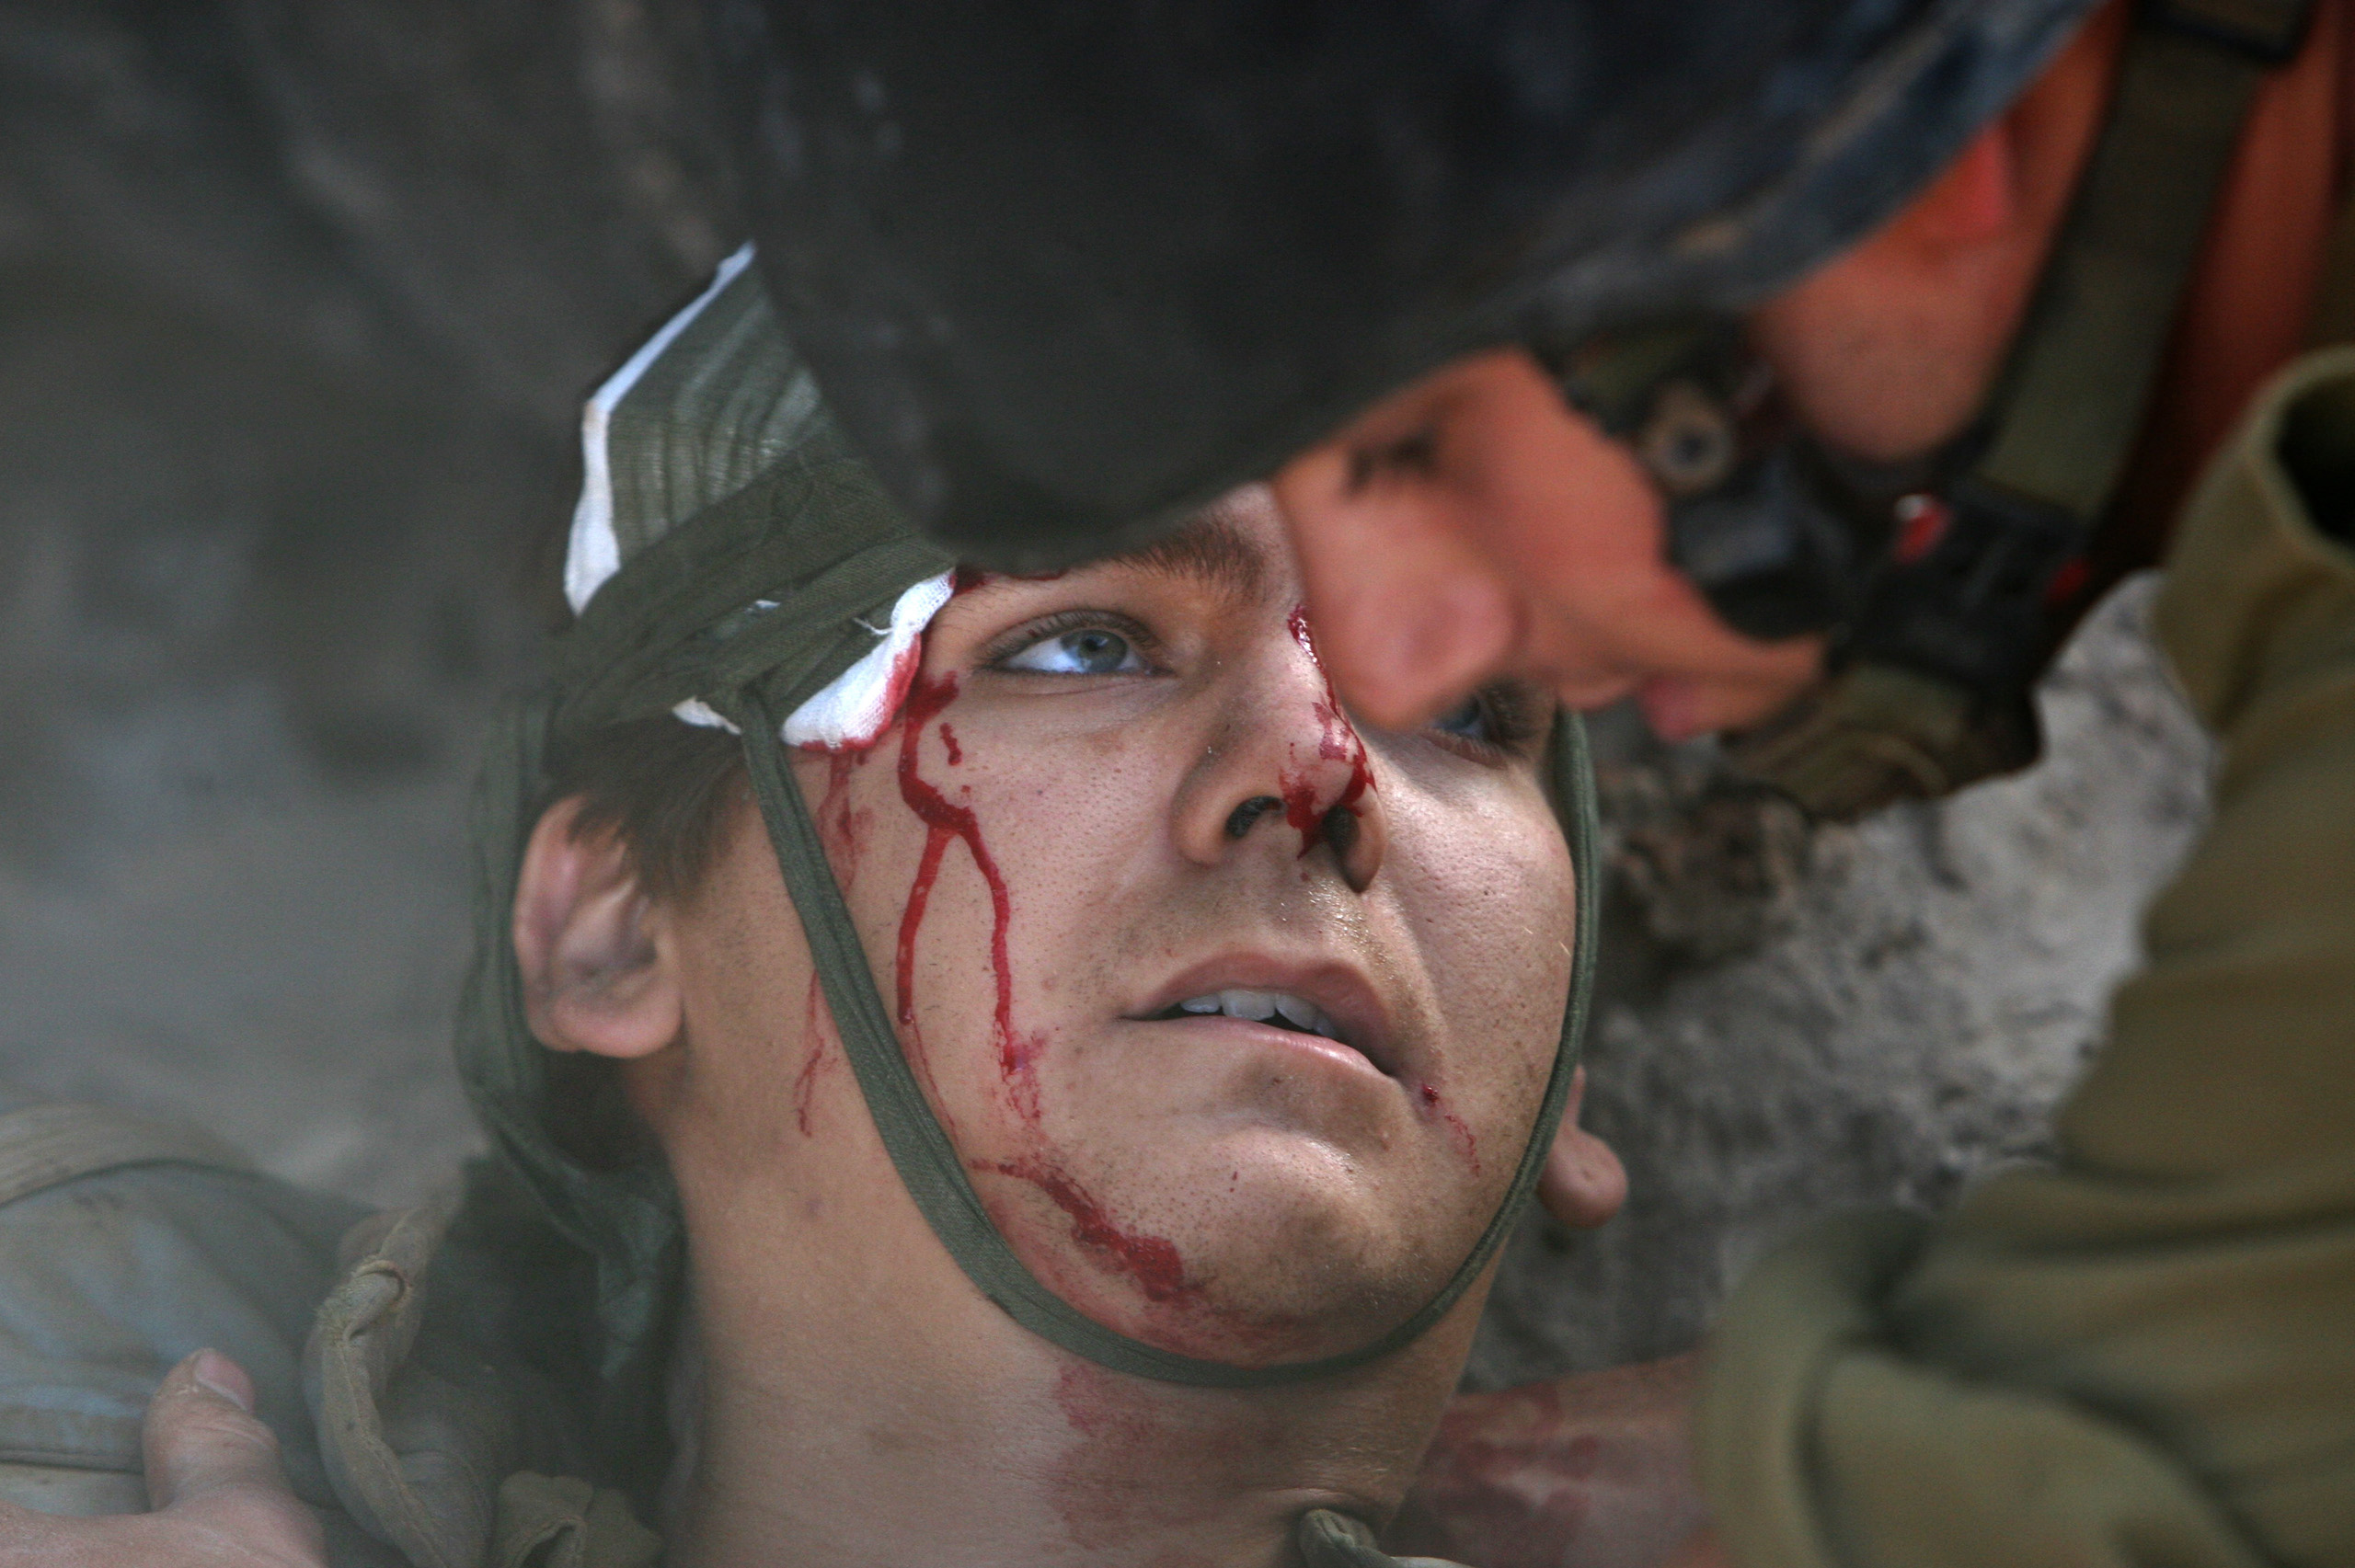 "This image I took, as the only embedded photographer with the Israeli Defense Forces in Lebanon (IDF),  depicts a classic  sacrifice  visual narrative of a hero giving his life for his nation. I was told by several people that it was 'very Vietnam'. Since this image was not overtly gruesome and since the soldier survived his injuries, it could be prominently displayed. I later learned that this scene actually represents a victim of a friendly fire incident, though it had already circulated and had been published with the caption that this soldier had been wounded in a Hezbollah attack. Because I insisted that information be included in the caption, the image lost value as a propaganda tool. This soldier was inconveniently hit by the wrong explosives.                                          I have come to believe that embedded 'war photography' simplifies the brutal ambiguity of conflict into well-worn and widely recognized visual templates. We, ""war photographers,"" help in reinforcing masculine myths of war as a purging experience. As it stands, I believe my images did a great disservice to the people who died or participated in this unnecessary and farcical demonstration of force in 2006, which besides claiming the lives of more than one hundred Israeli soldiers, also killed almost 30 times more Lebanese civilians than the 44 Israeli civilian dead. This conditioned Israeli public opinion to accept similar carnage in Gaza in 2009 and 2014 as a reasonable response."